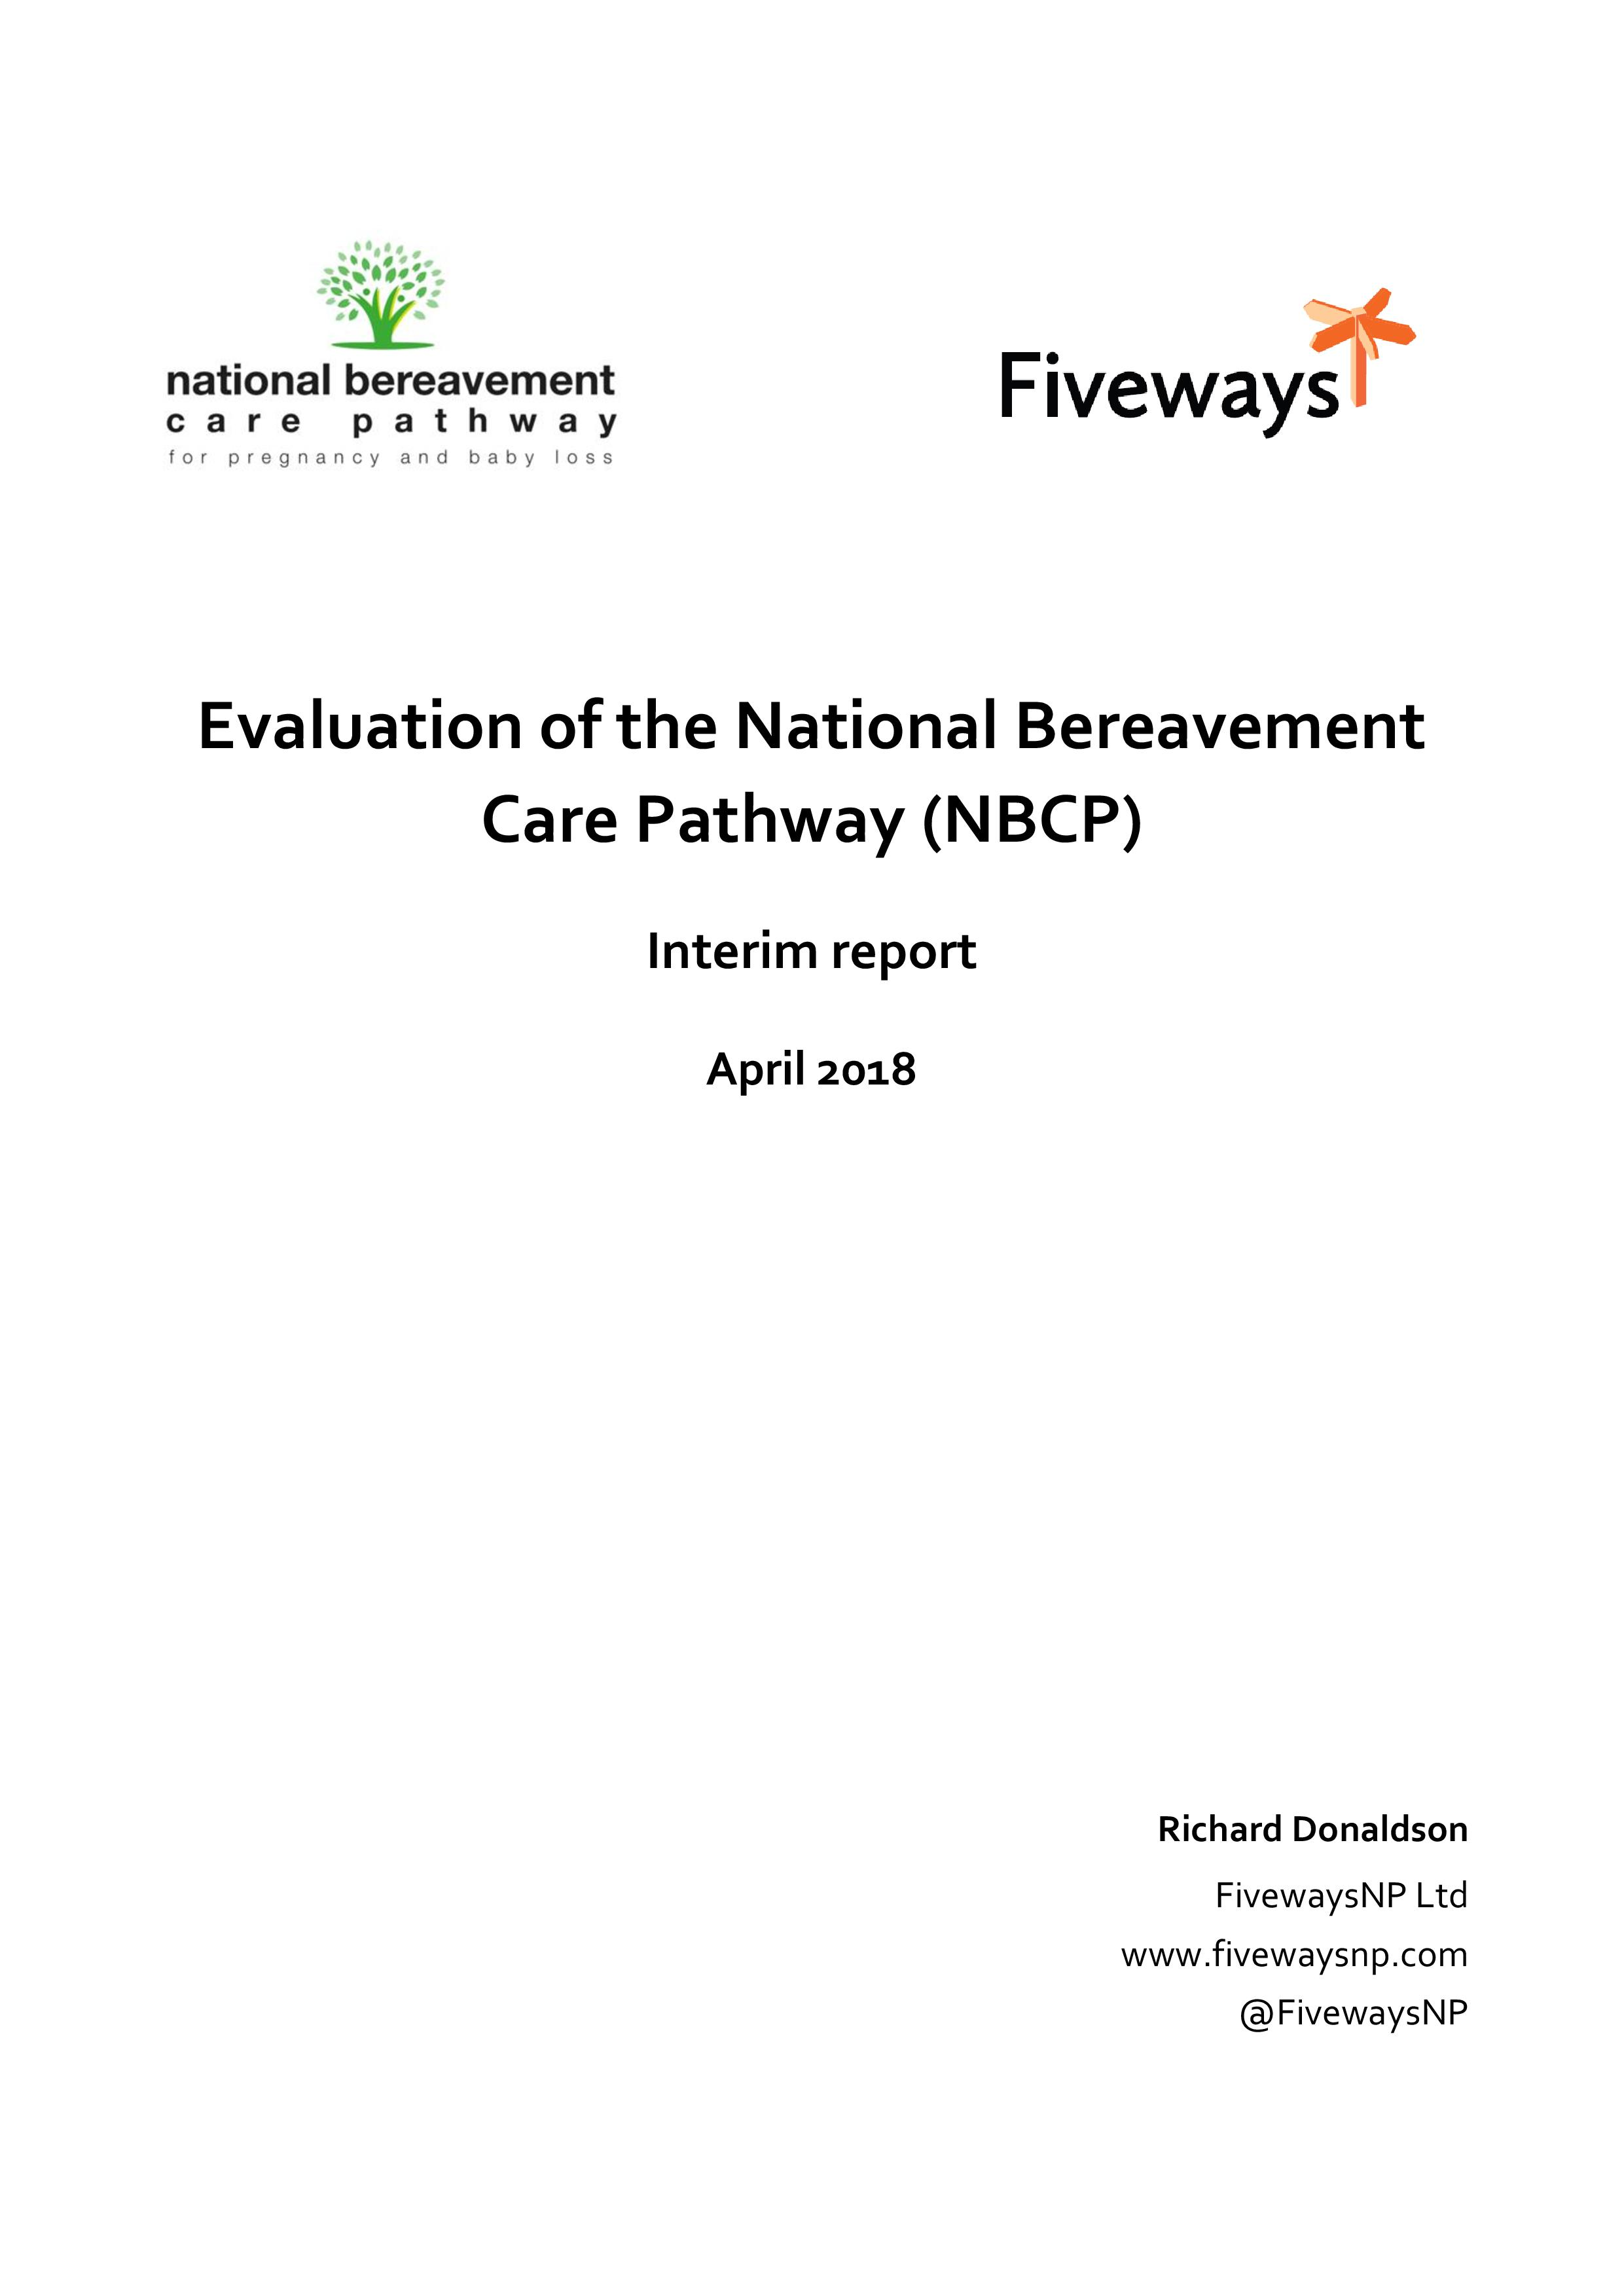 NBCP interim baseline evaluation report April